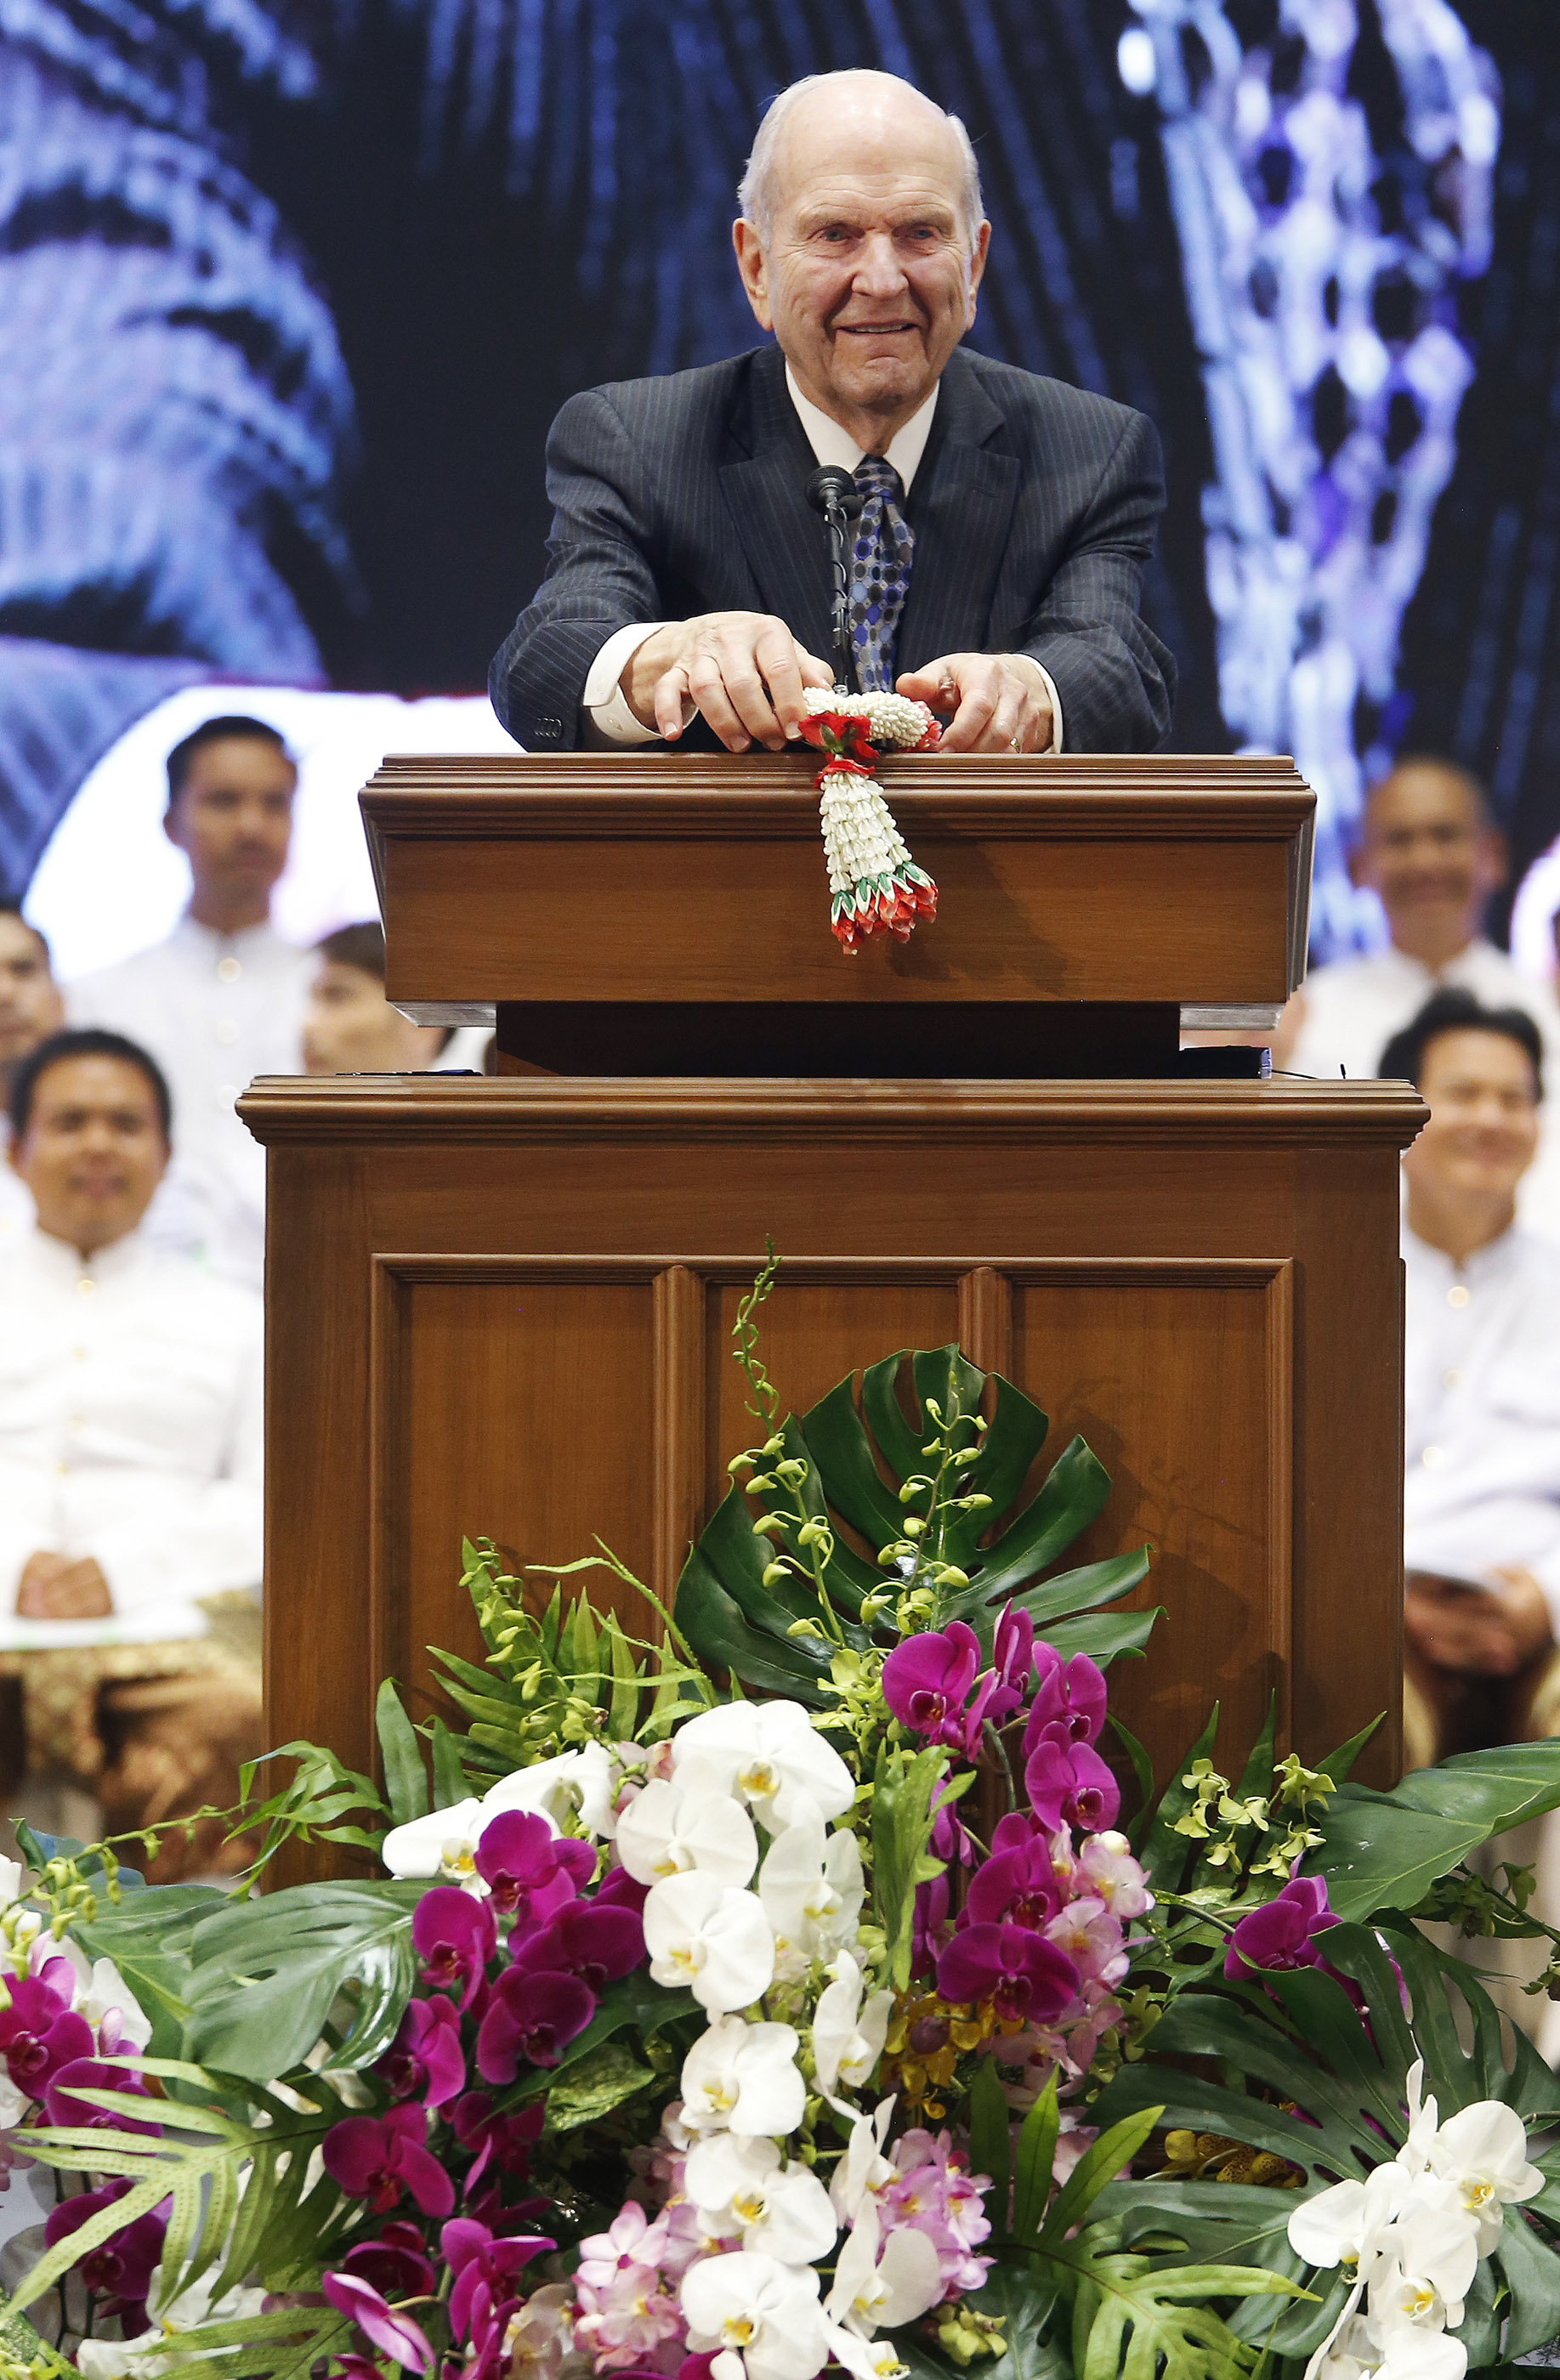 Russell M. Nelson, President of The Church of Jesus Christ of Latter-day Saints, displays flowers given to him in Bangkok, Thailand, prior to speaking on Friday, April 20, 2018.